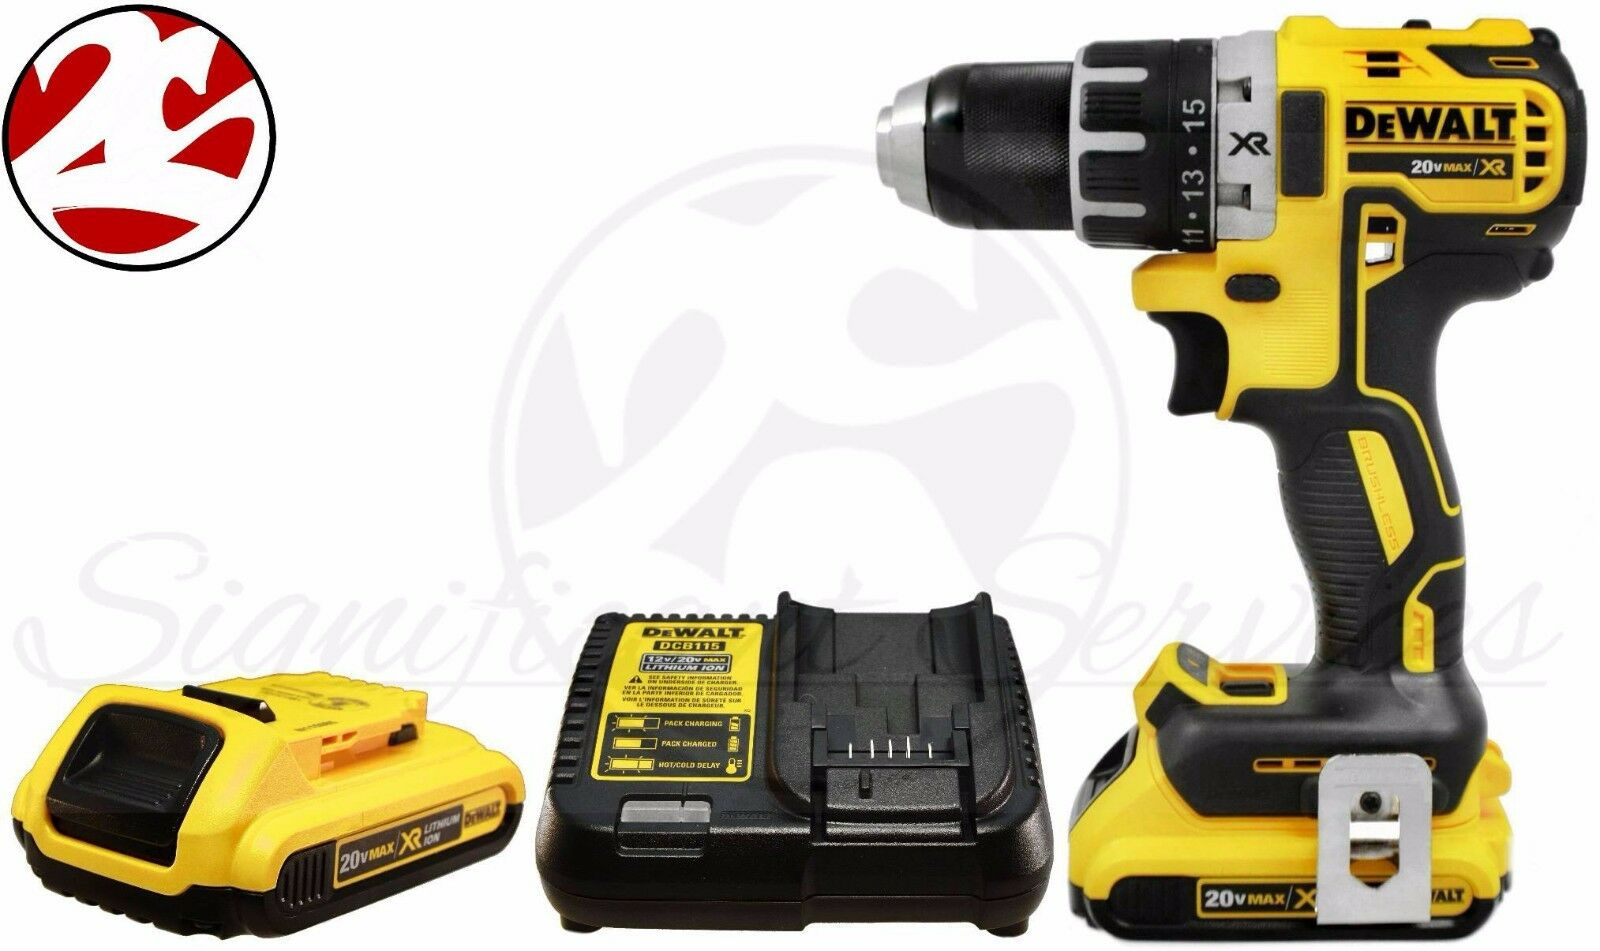 DeWALT DCD791 20V MAX XR Lithium Ion Brushless Cordless 1/2